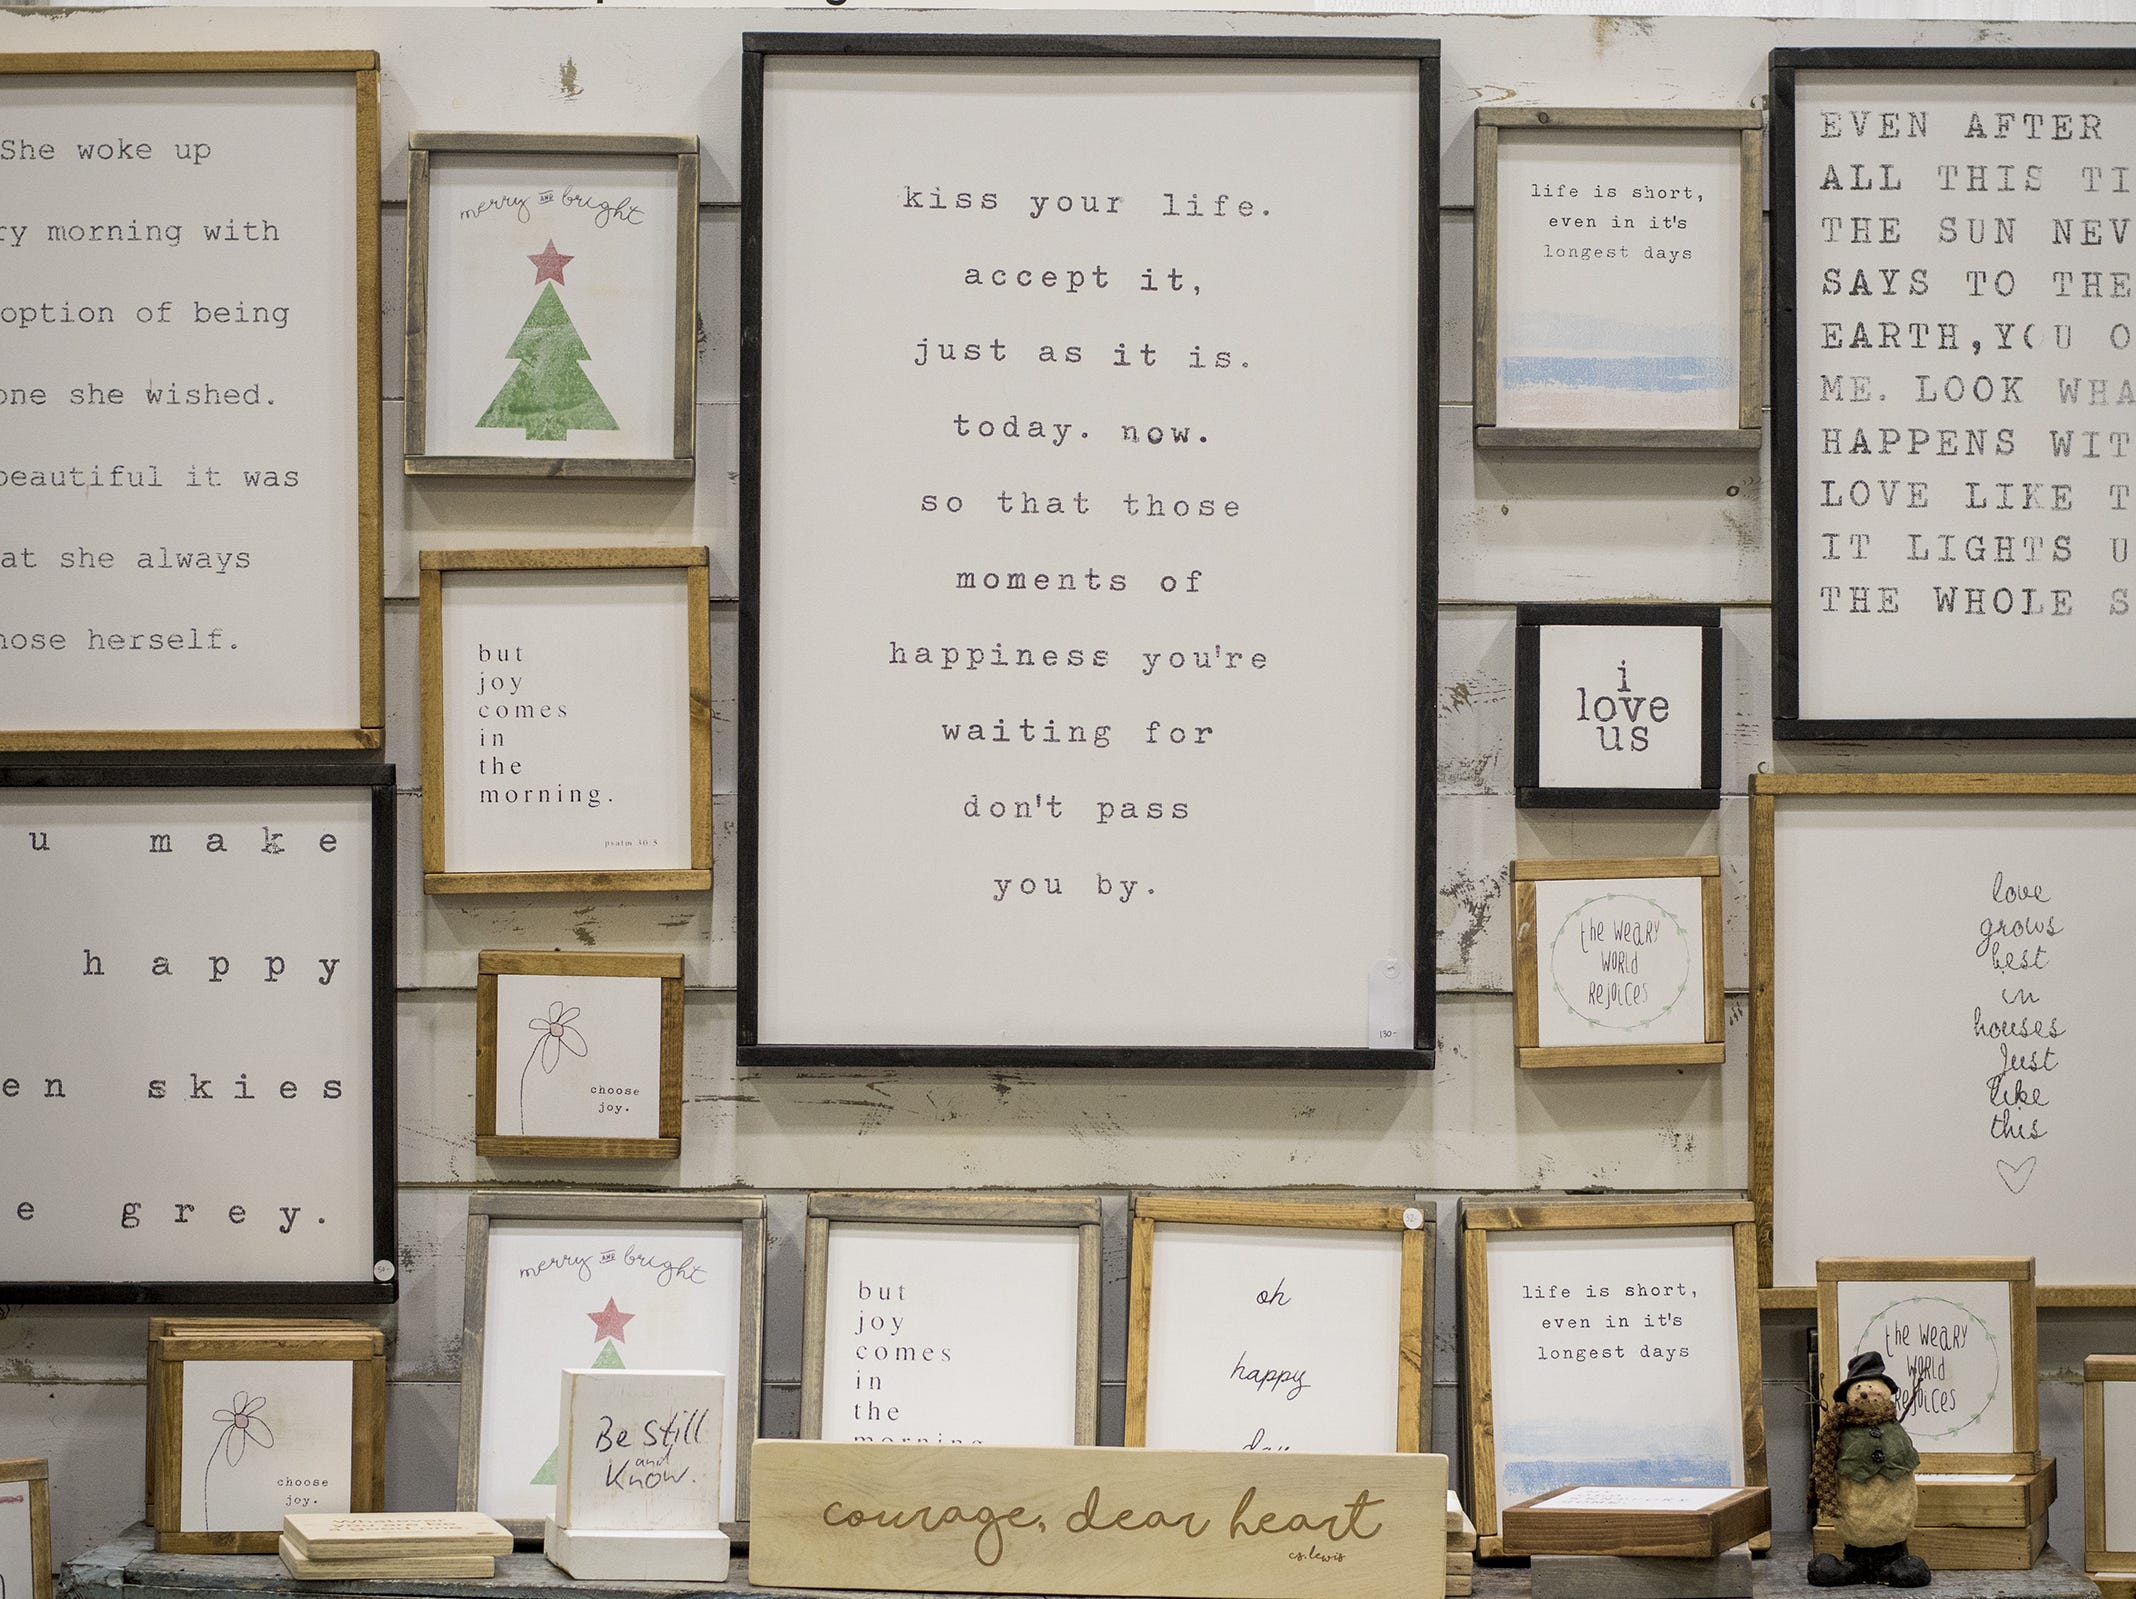 Harpers Design Co. showcases framed saying and art during the Greater Cincinnati Holiday Market at the Duke Energy Center Friday, November 2, 2018 in Cincinnati, Ohio. The event runs through Sunday, November 4.